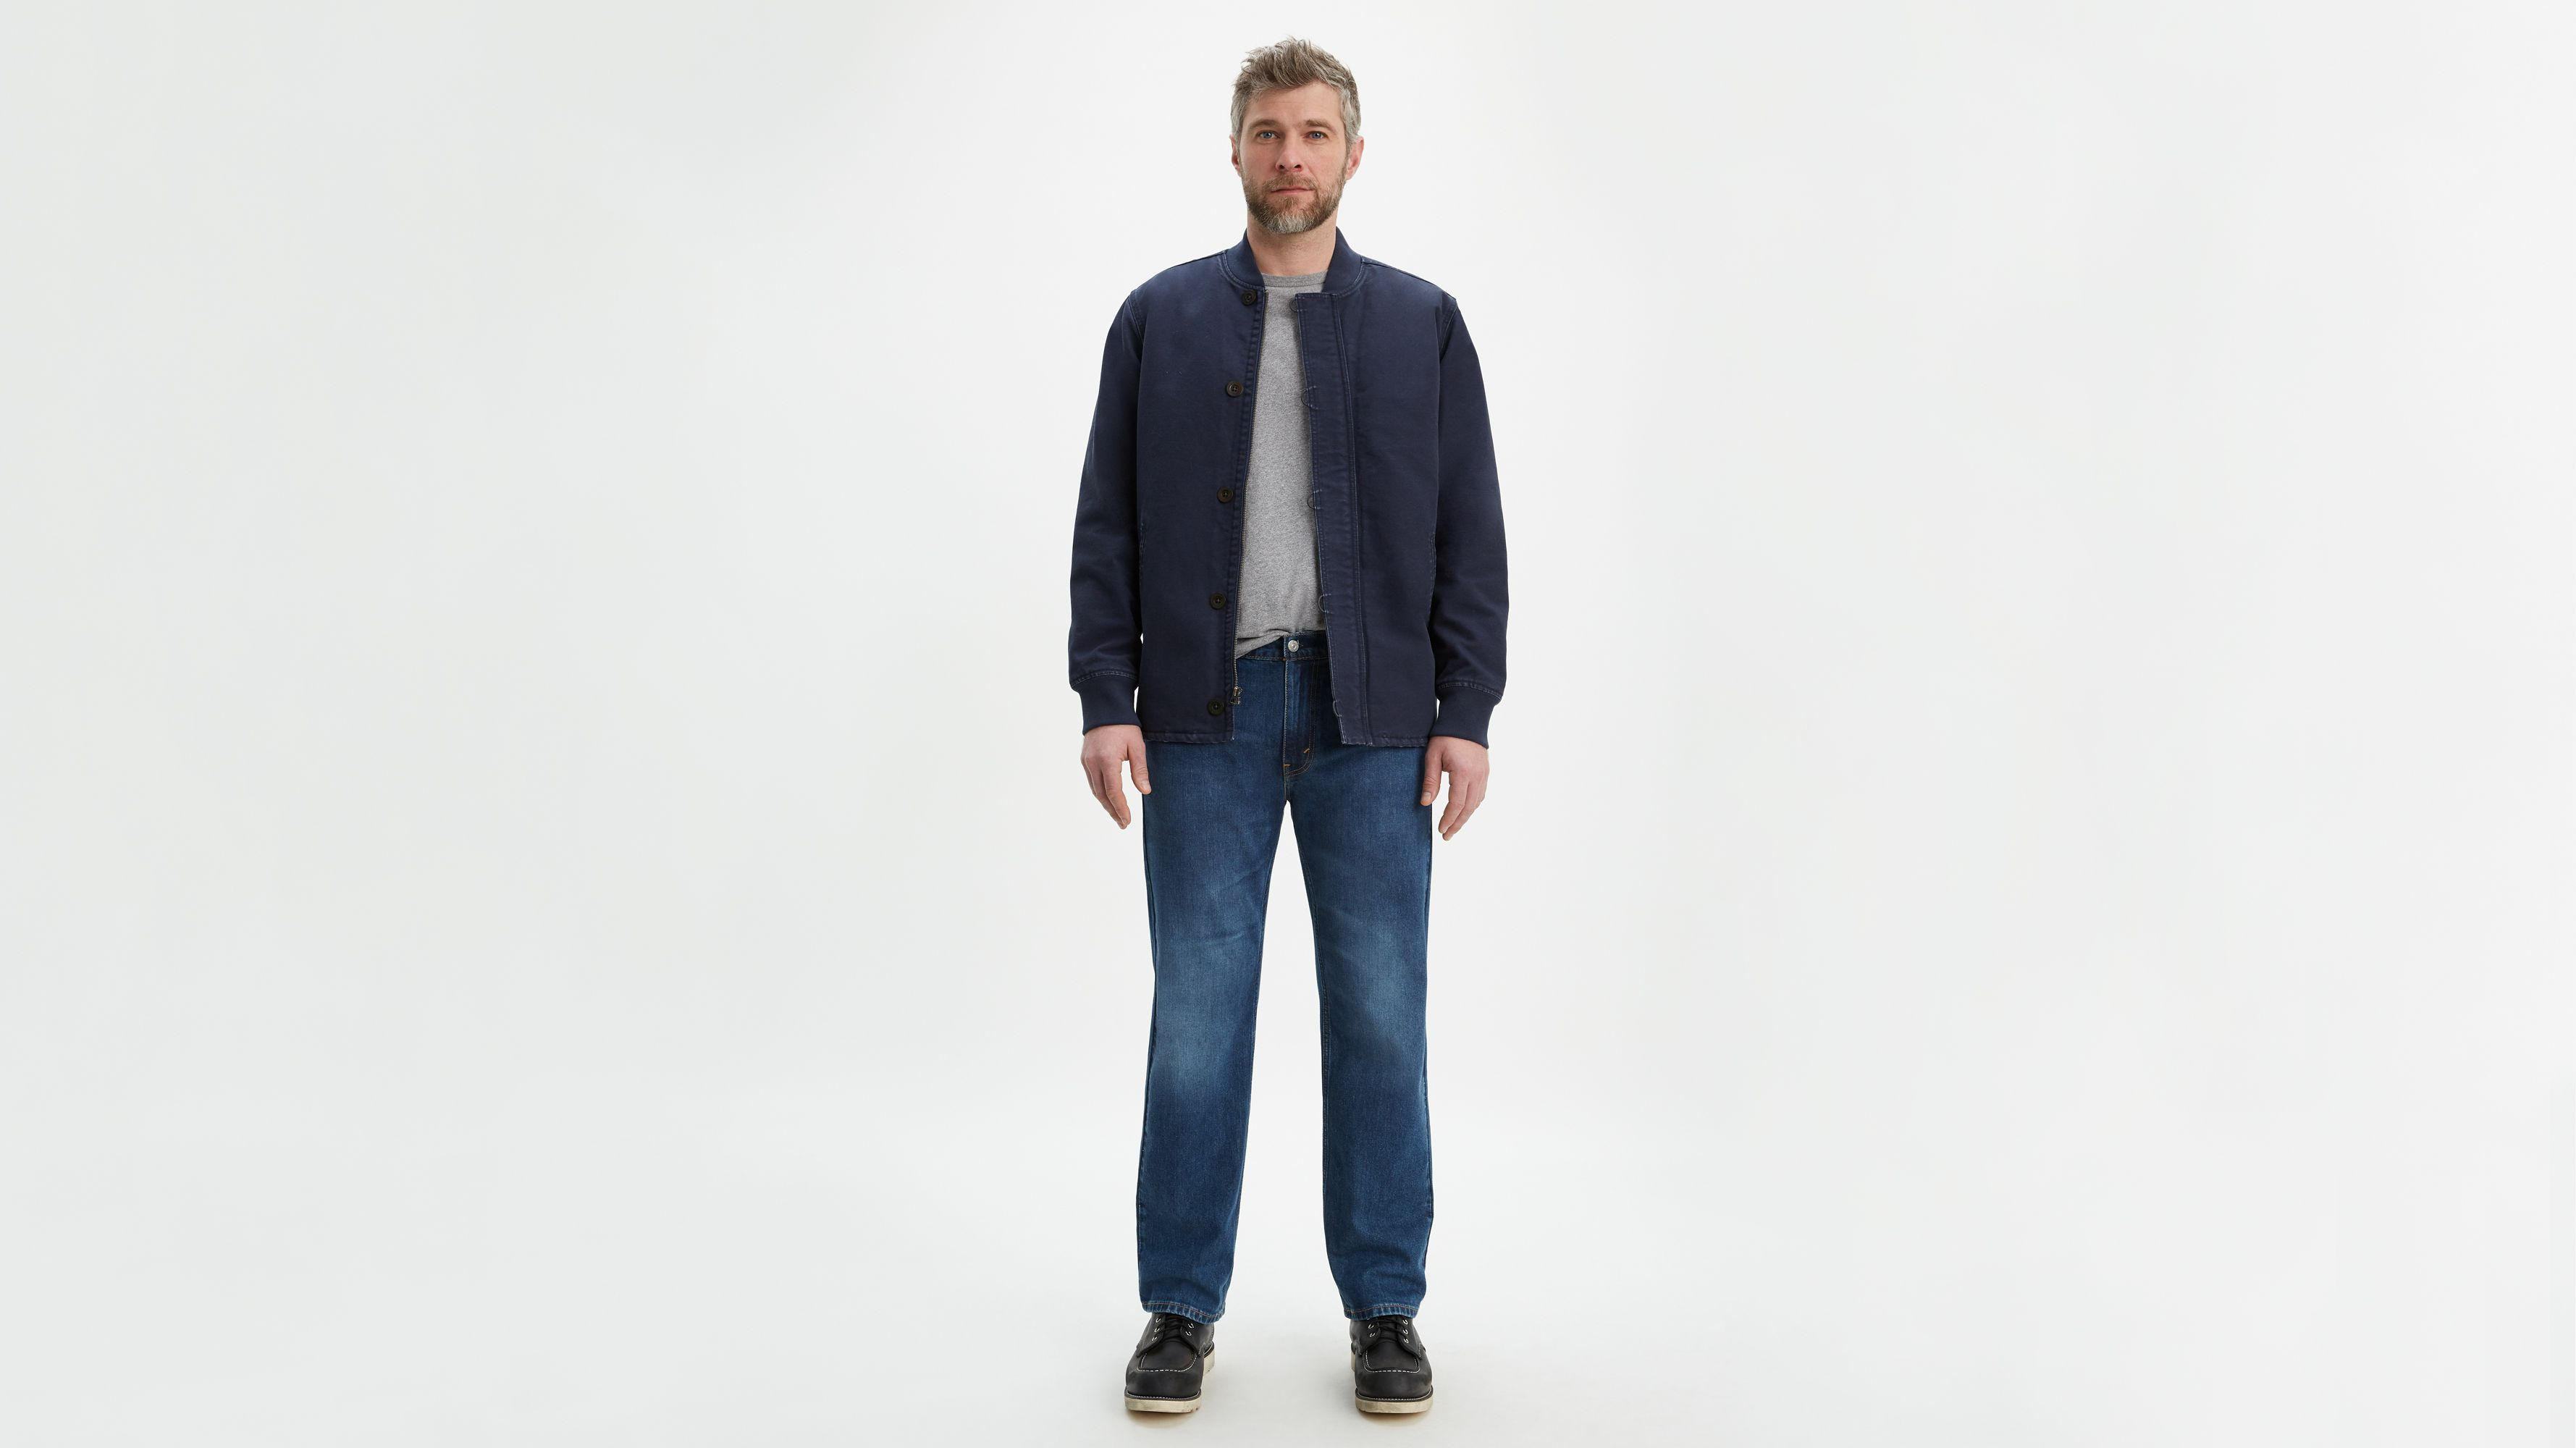 569™ Loose Straight Fit Men's Jeans